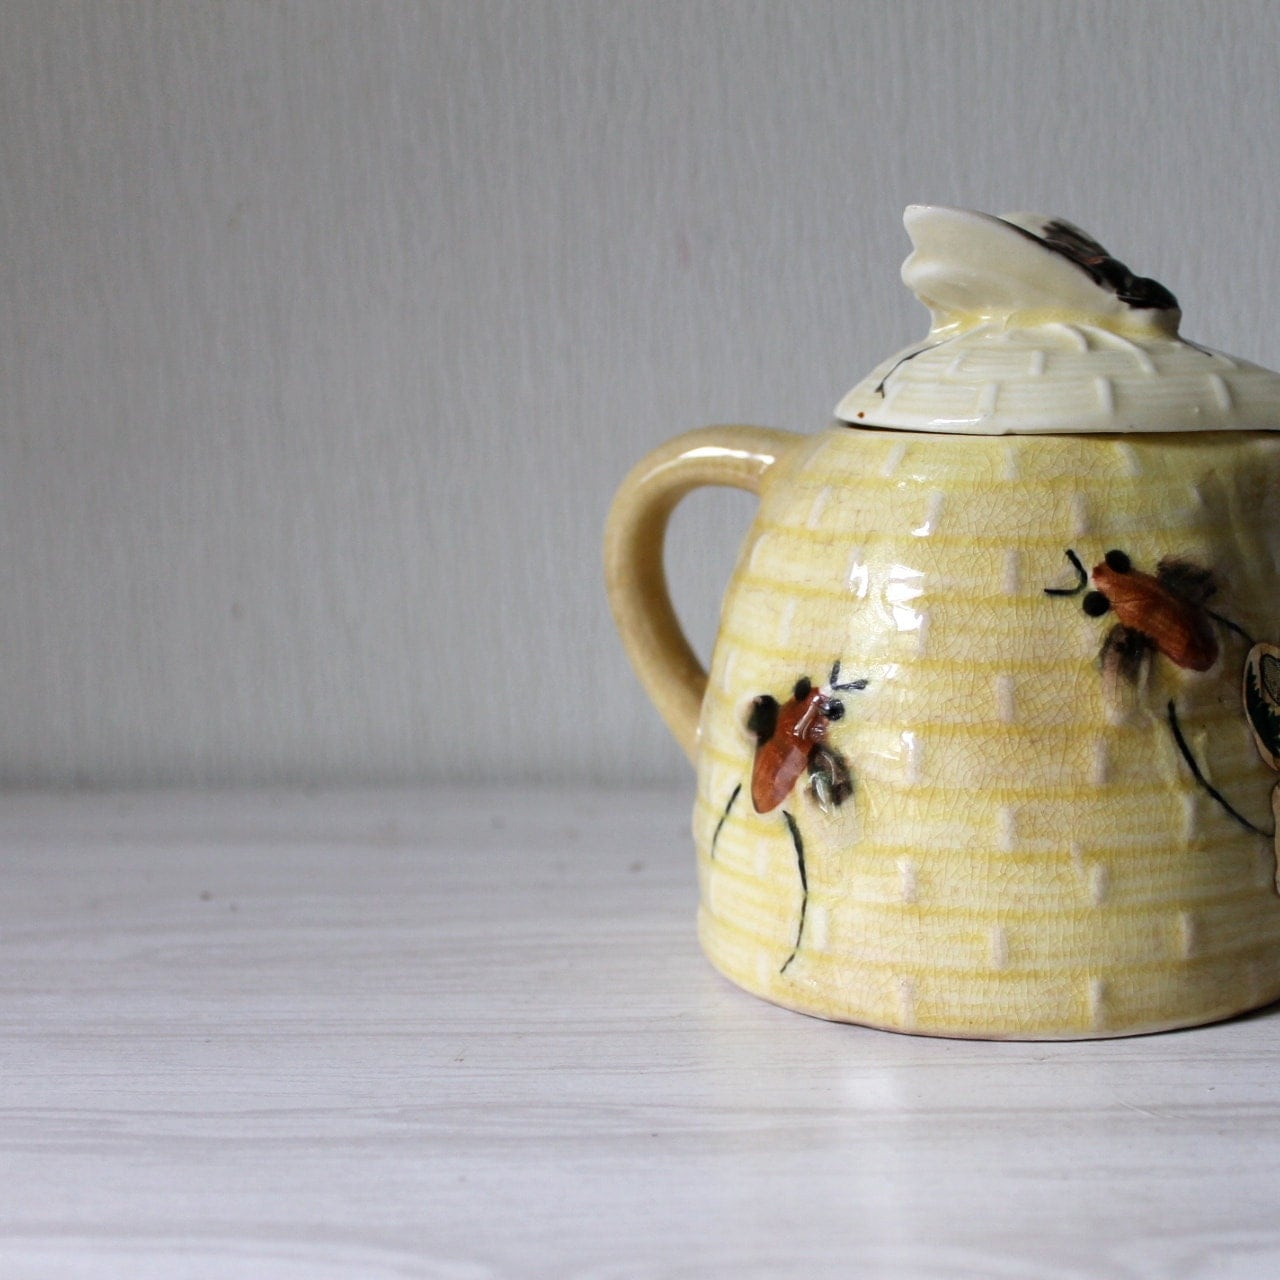 Vintage Honey Pot jar Ceramic bees bee skep theme Kitsch kitchen collectible - opendoorstudio